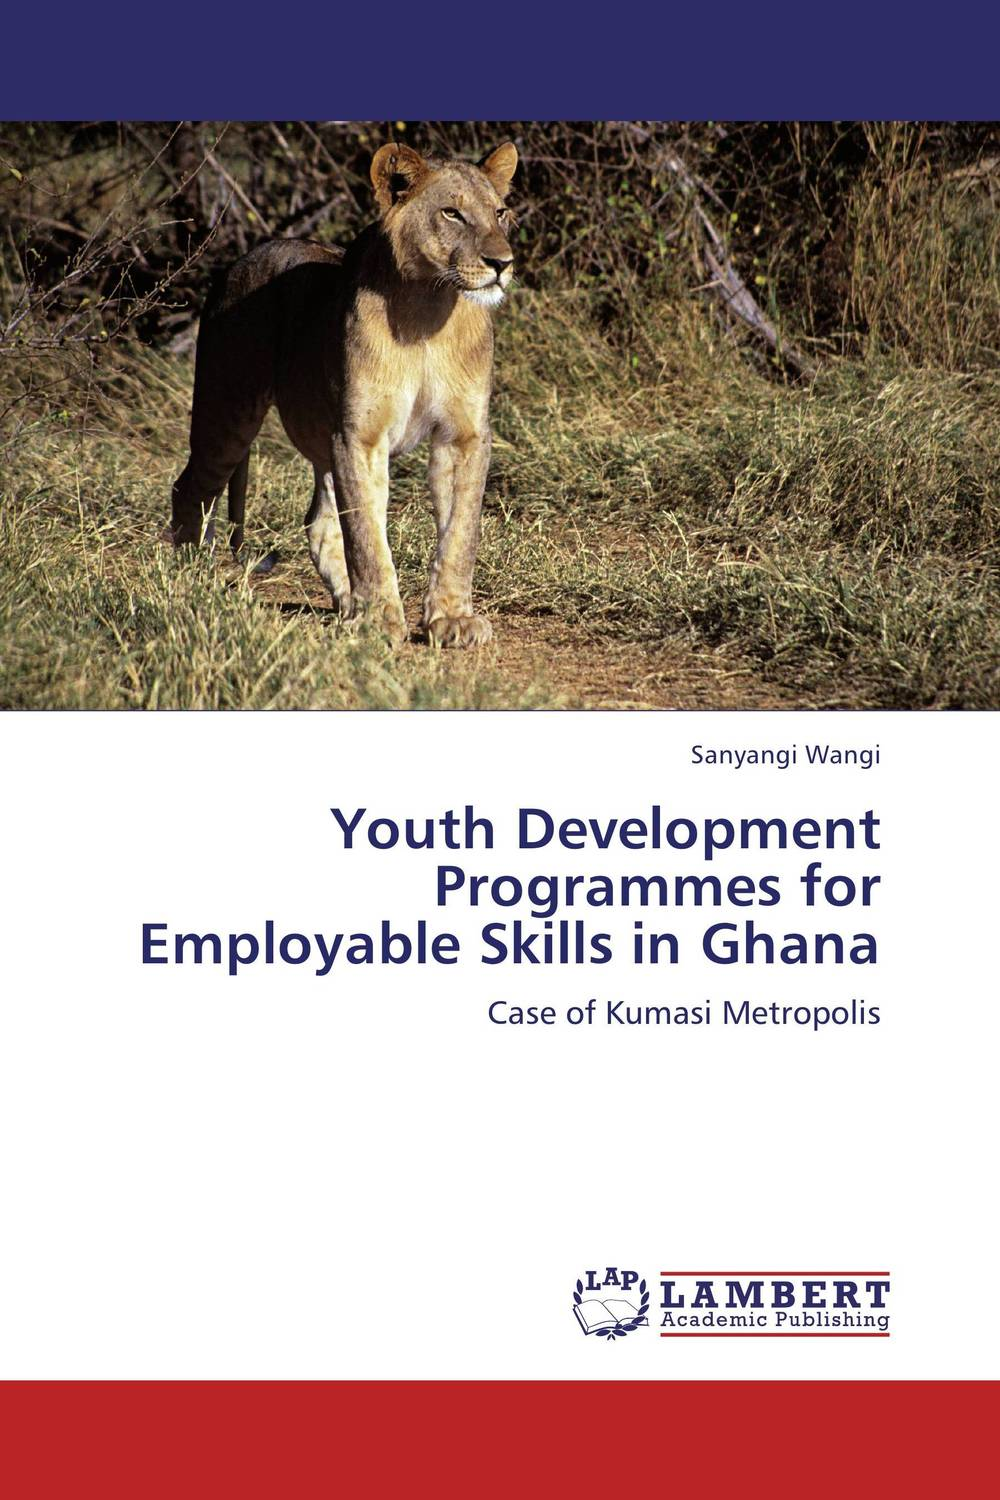 Youth Development Programmes for Employable Skills in Ghana elaine biech training and development for dummies